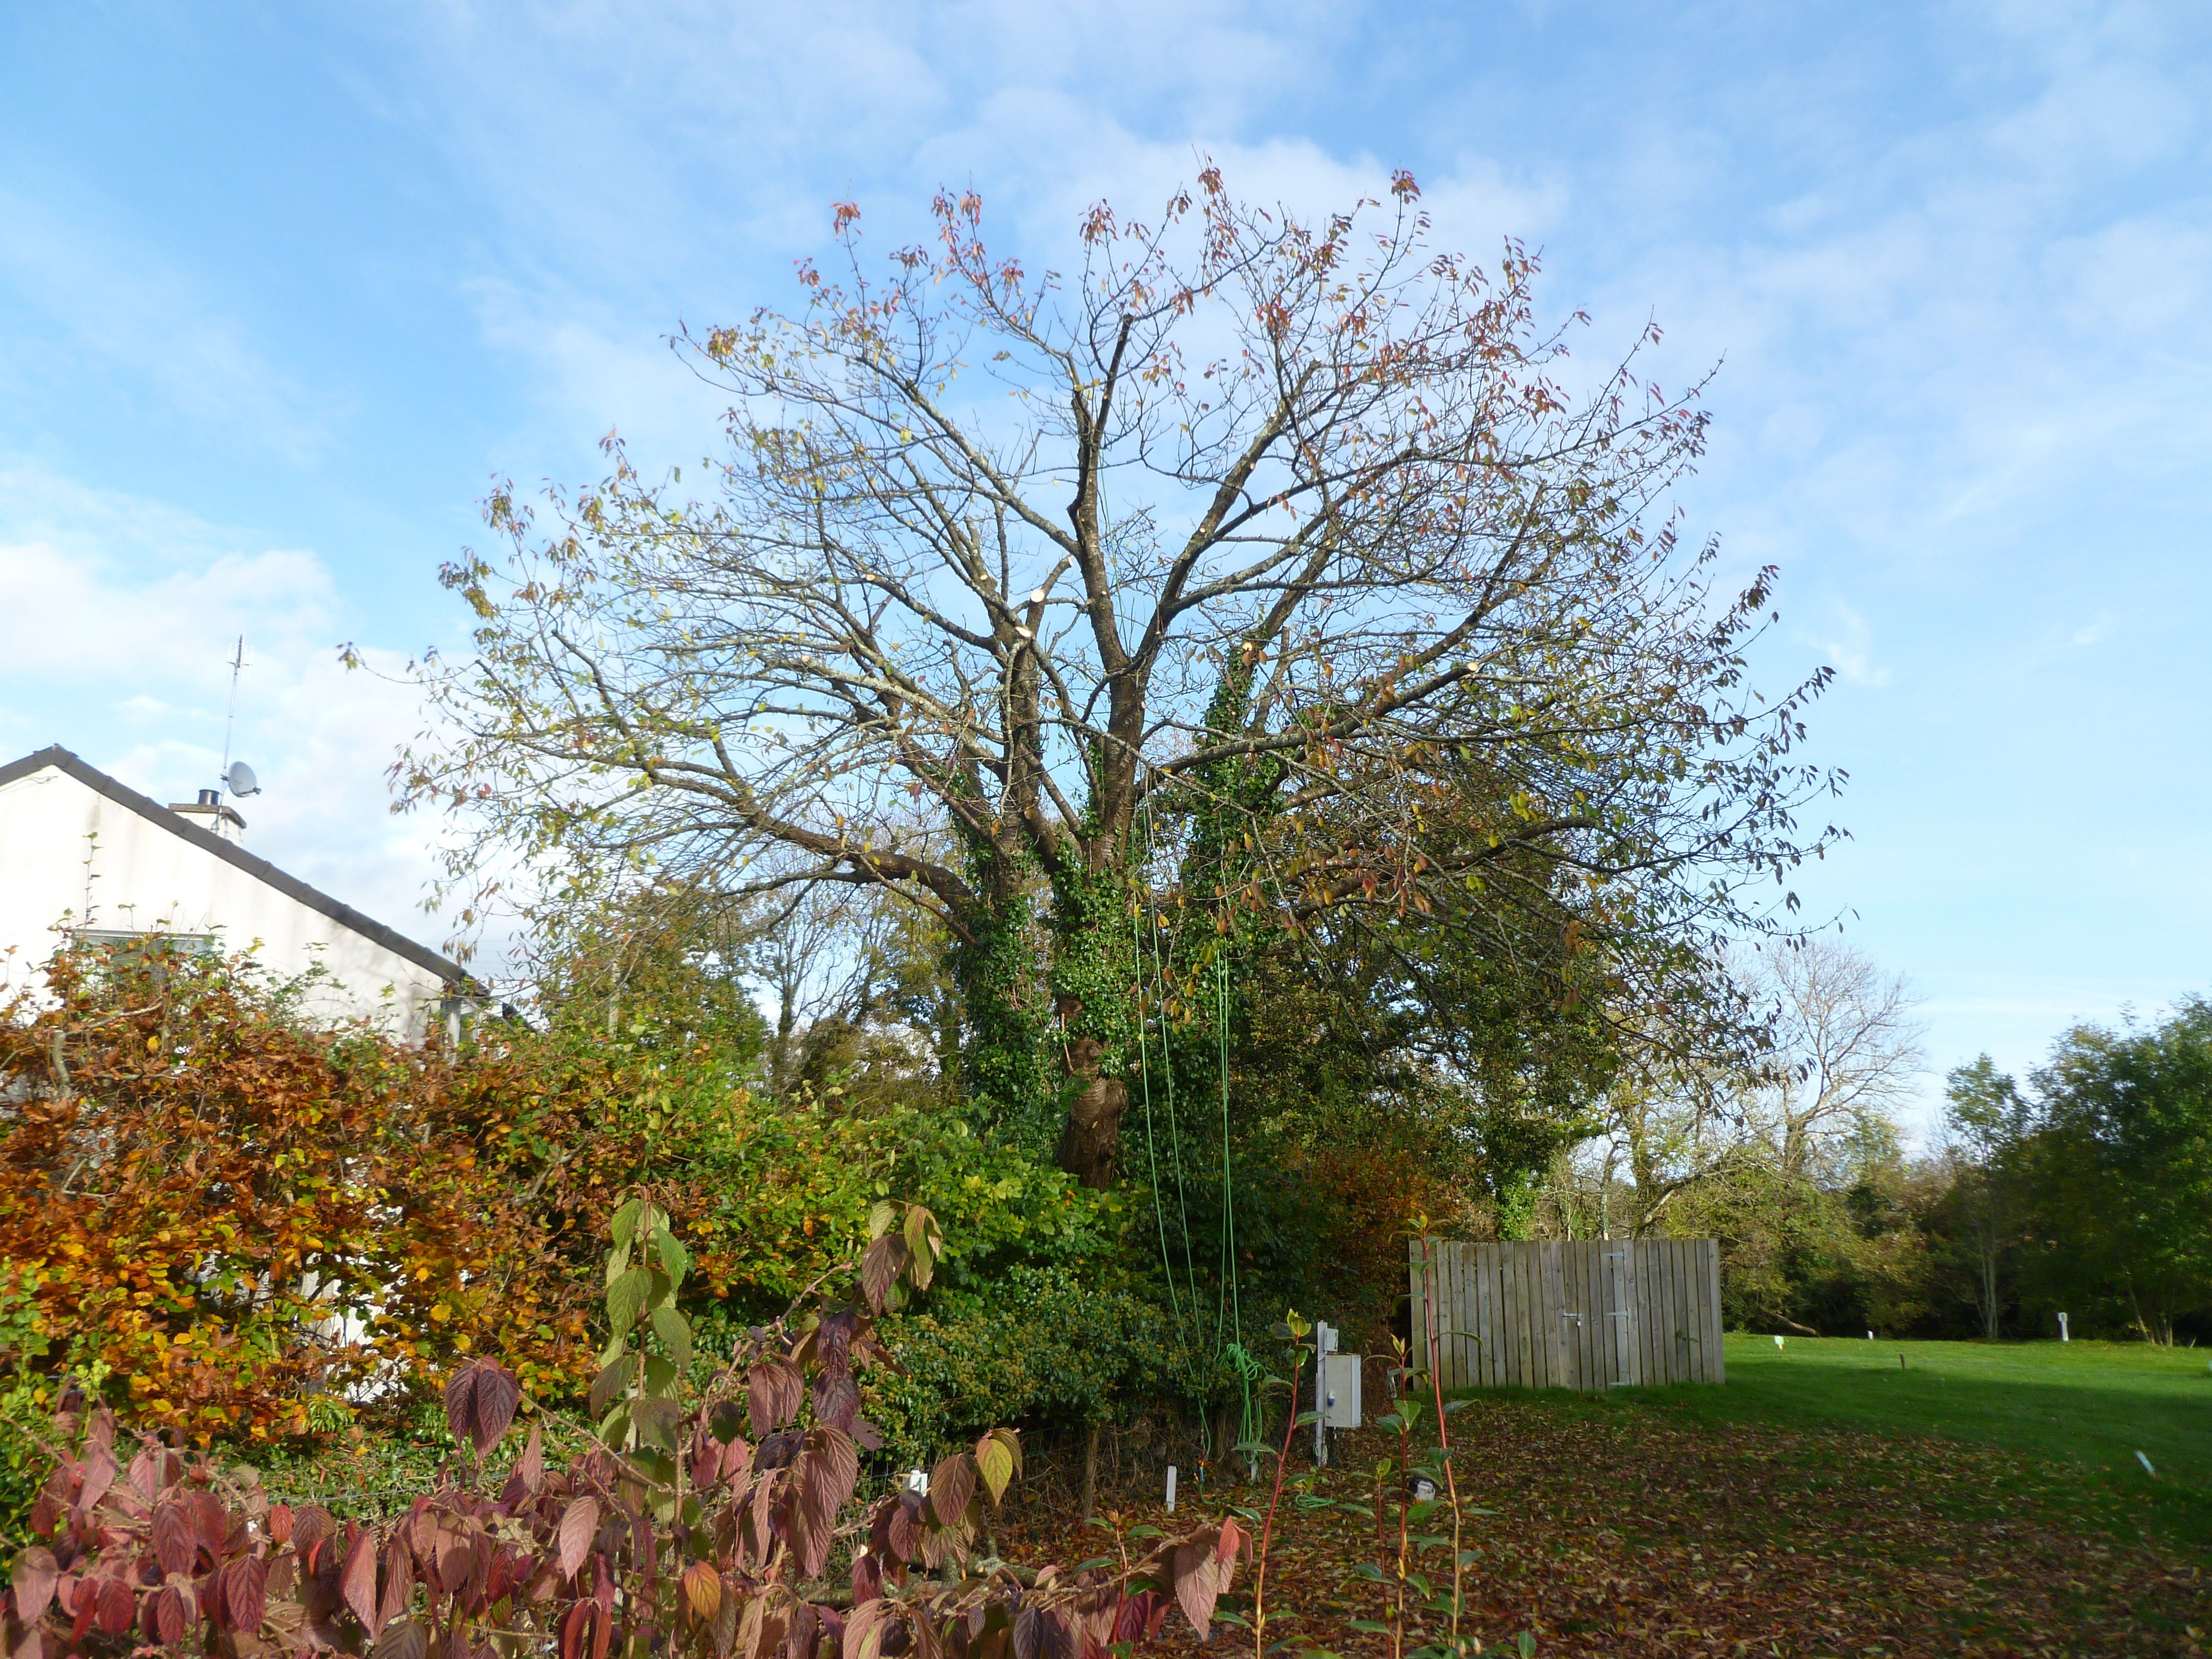 Cherry Tree Crown reduction complete. Another satisfied customer for Dragon Tree Services.